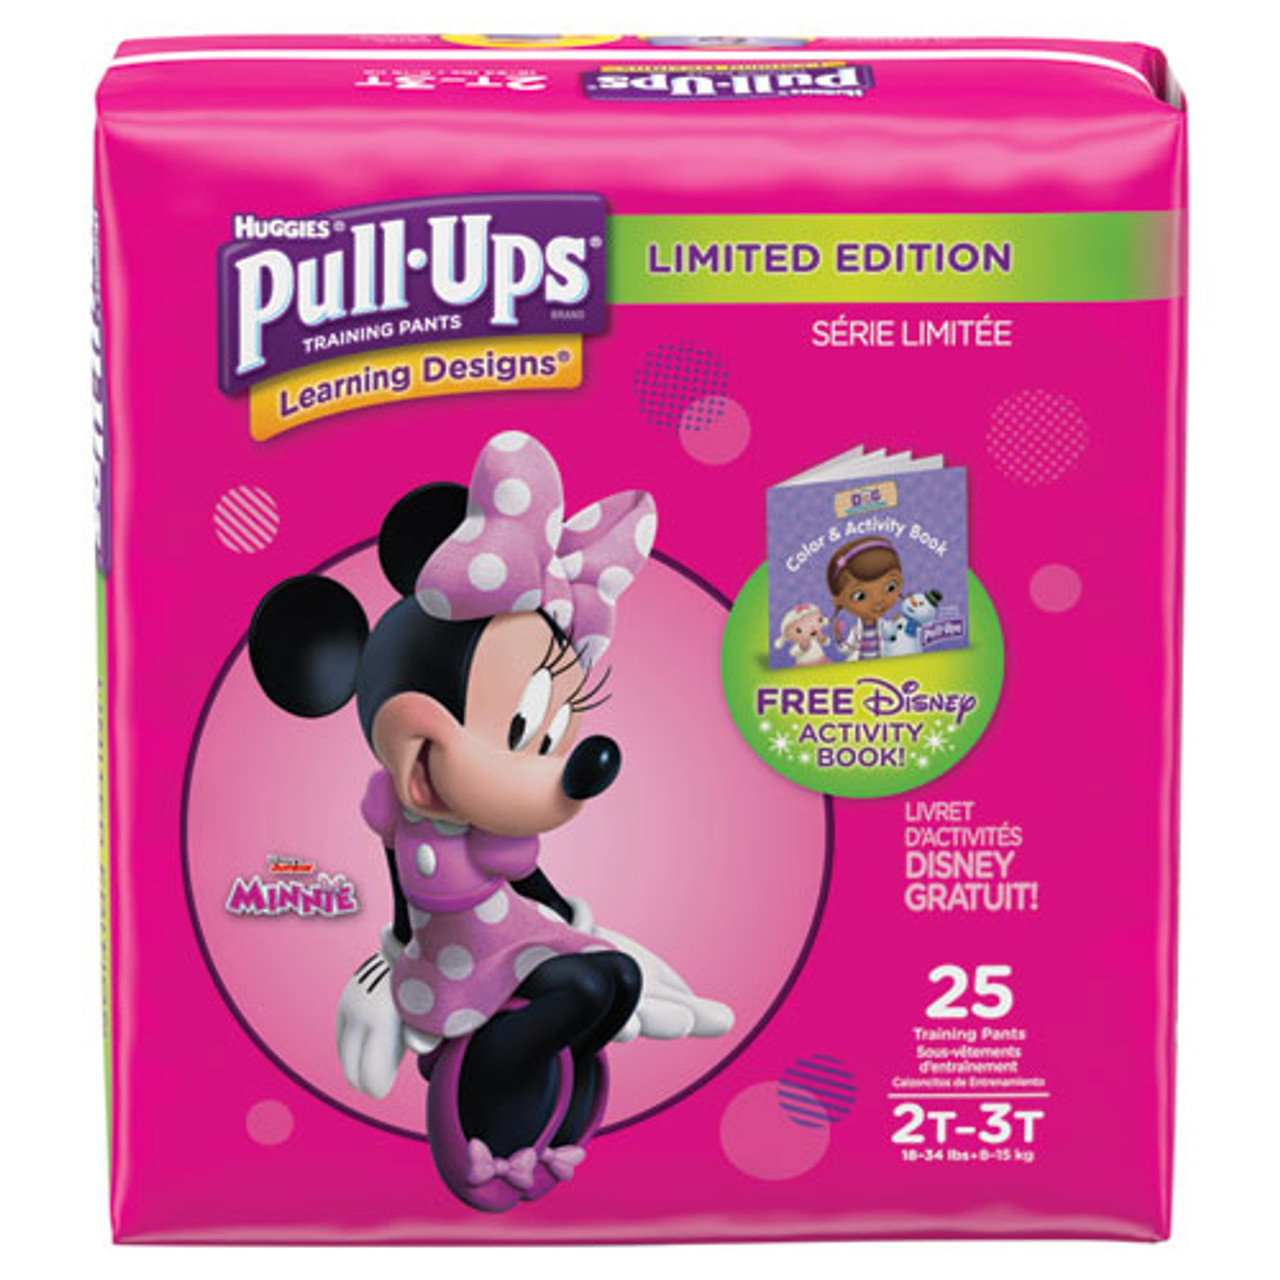 Pull-Ups Learning Designs Potty Training Pants for Girls